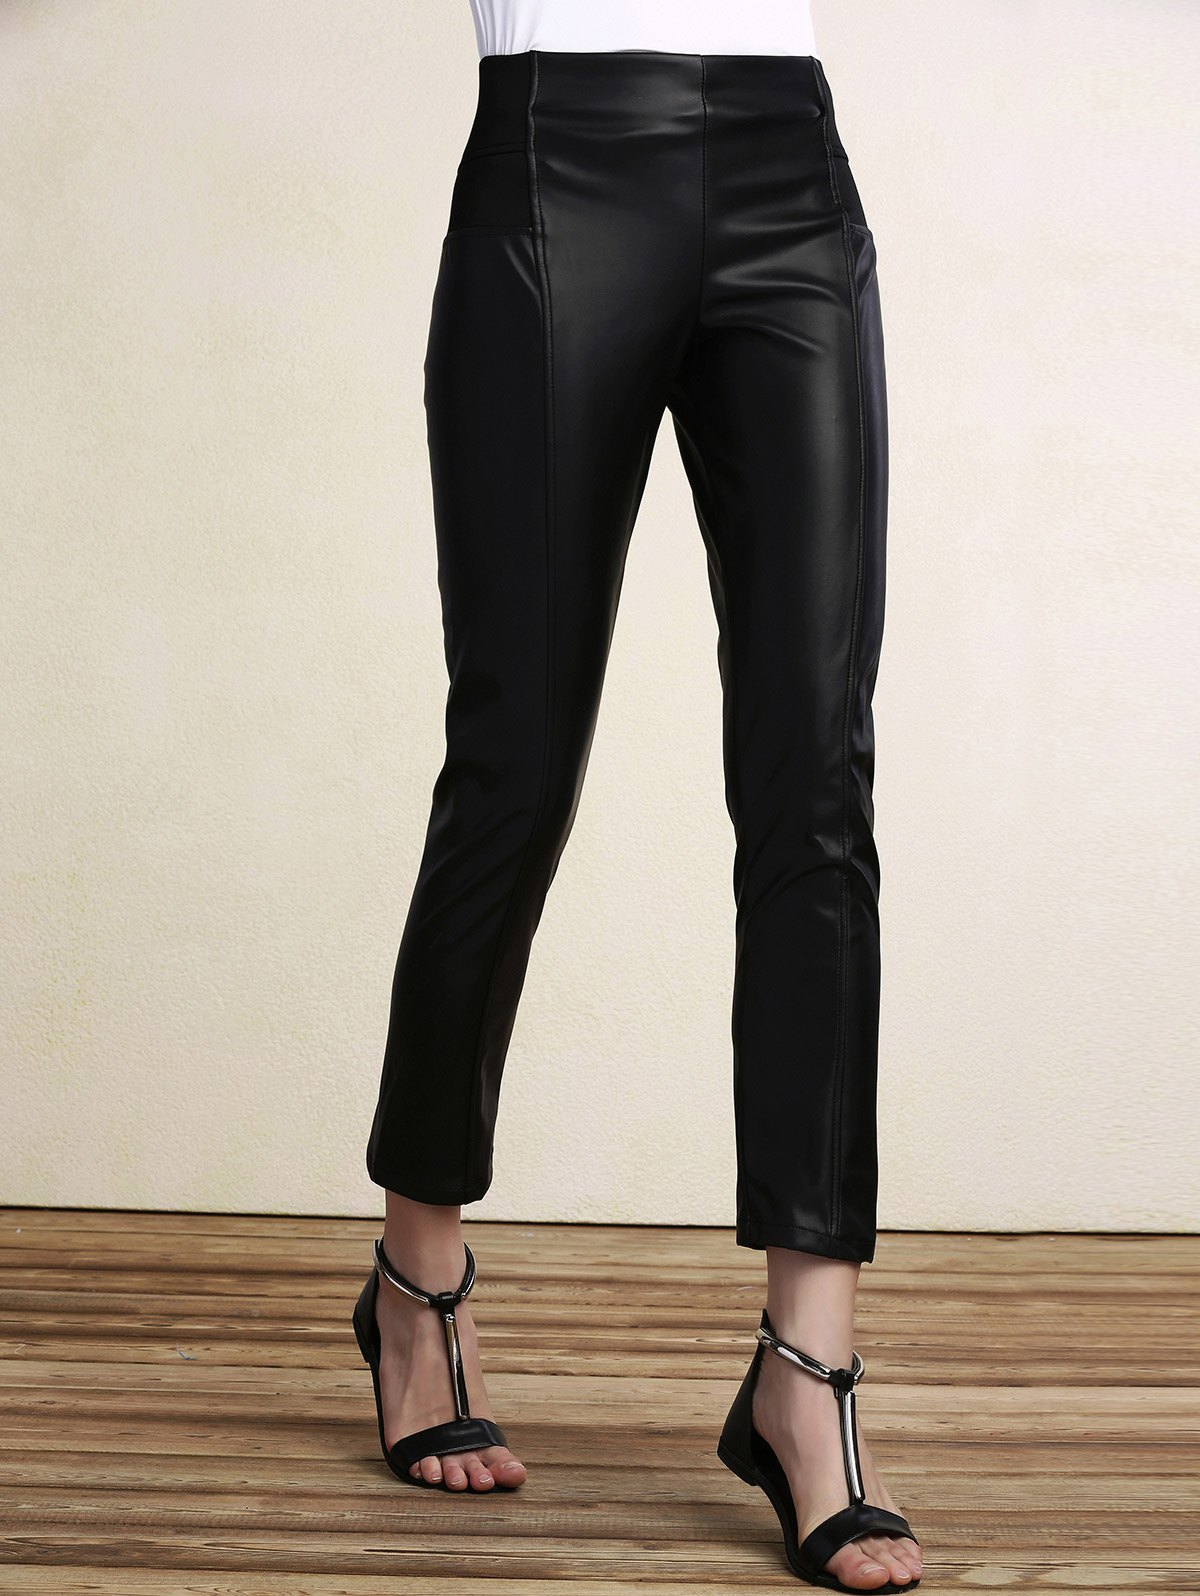 Find great deals on eBay for black pencil pants. Shop with confidence.